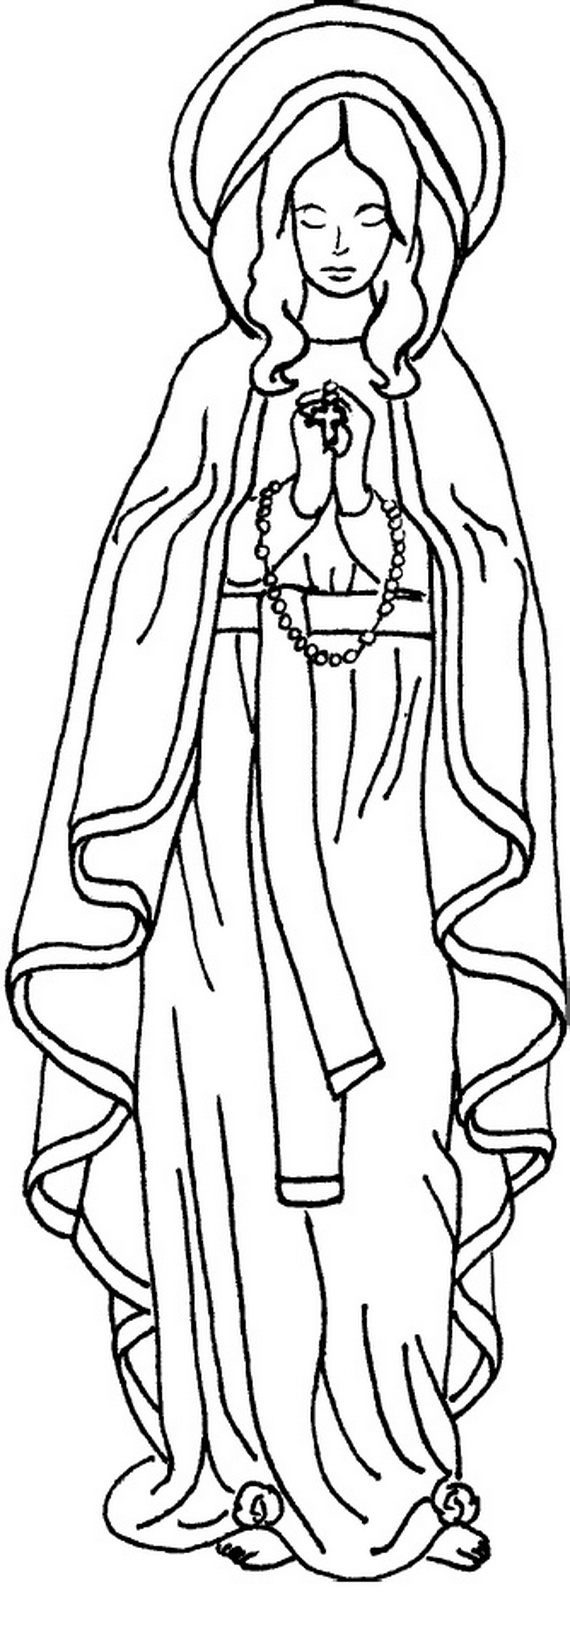 Printable coloring pages virgin mary related posts the assumption of blessed virgin mary glorious mysteries